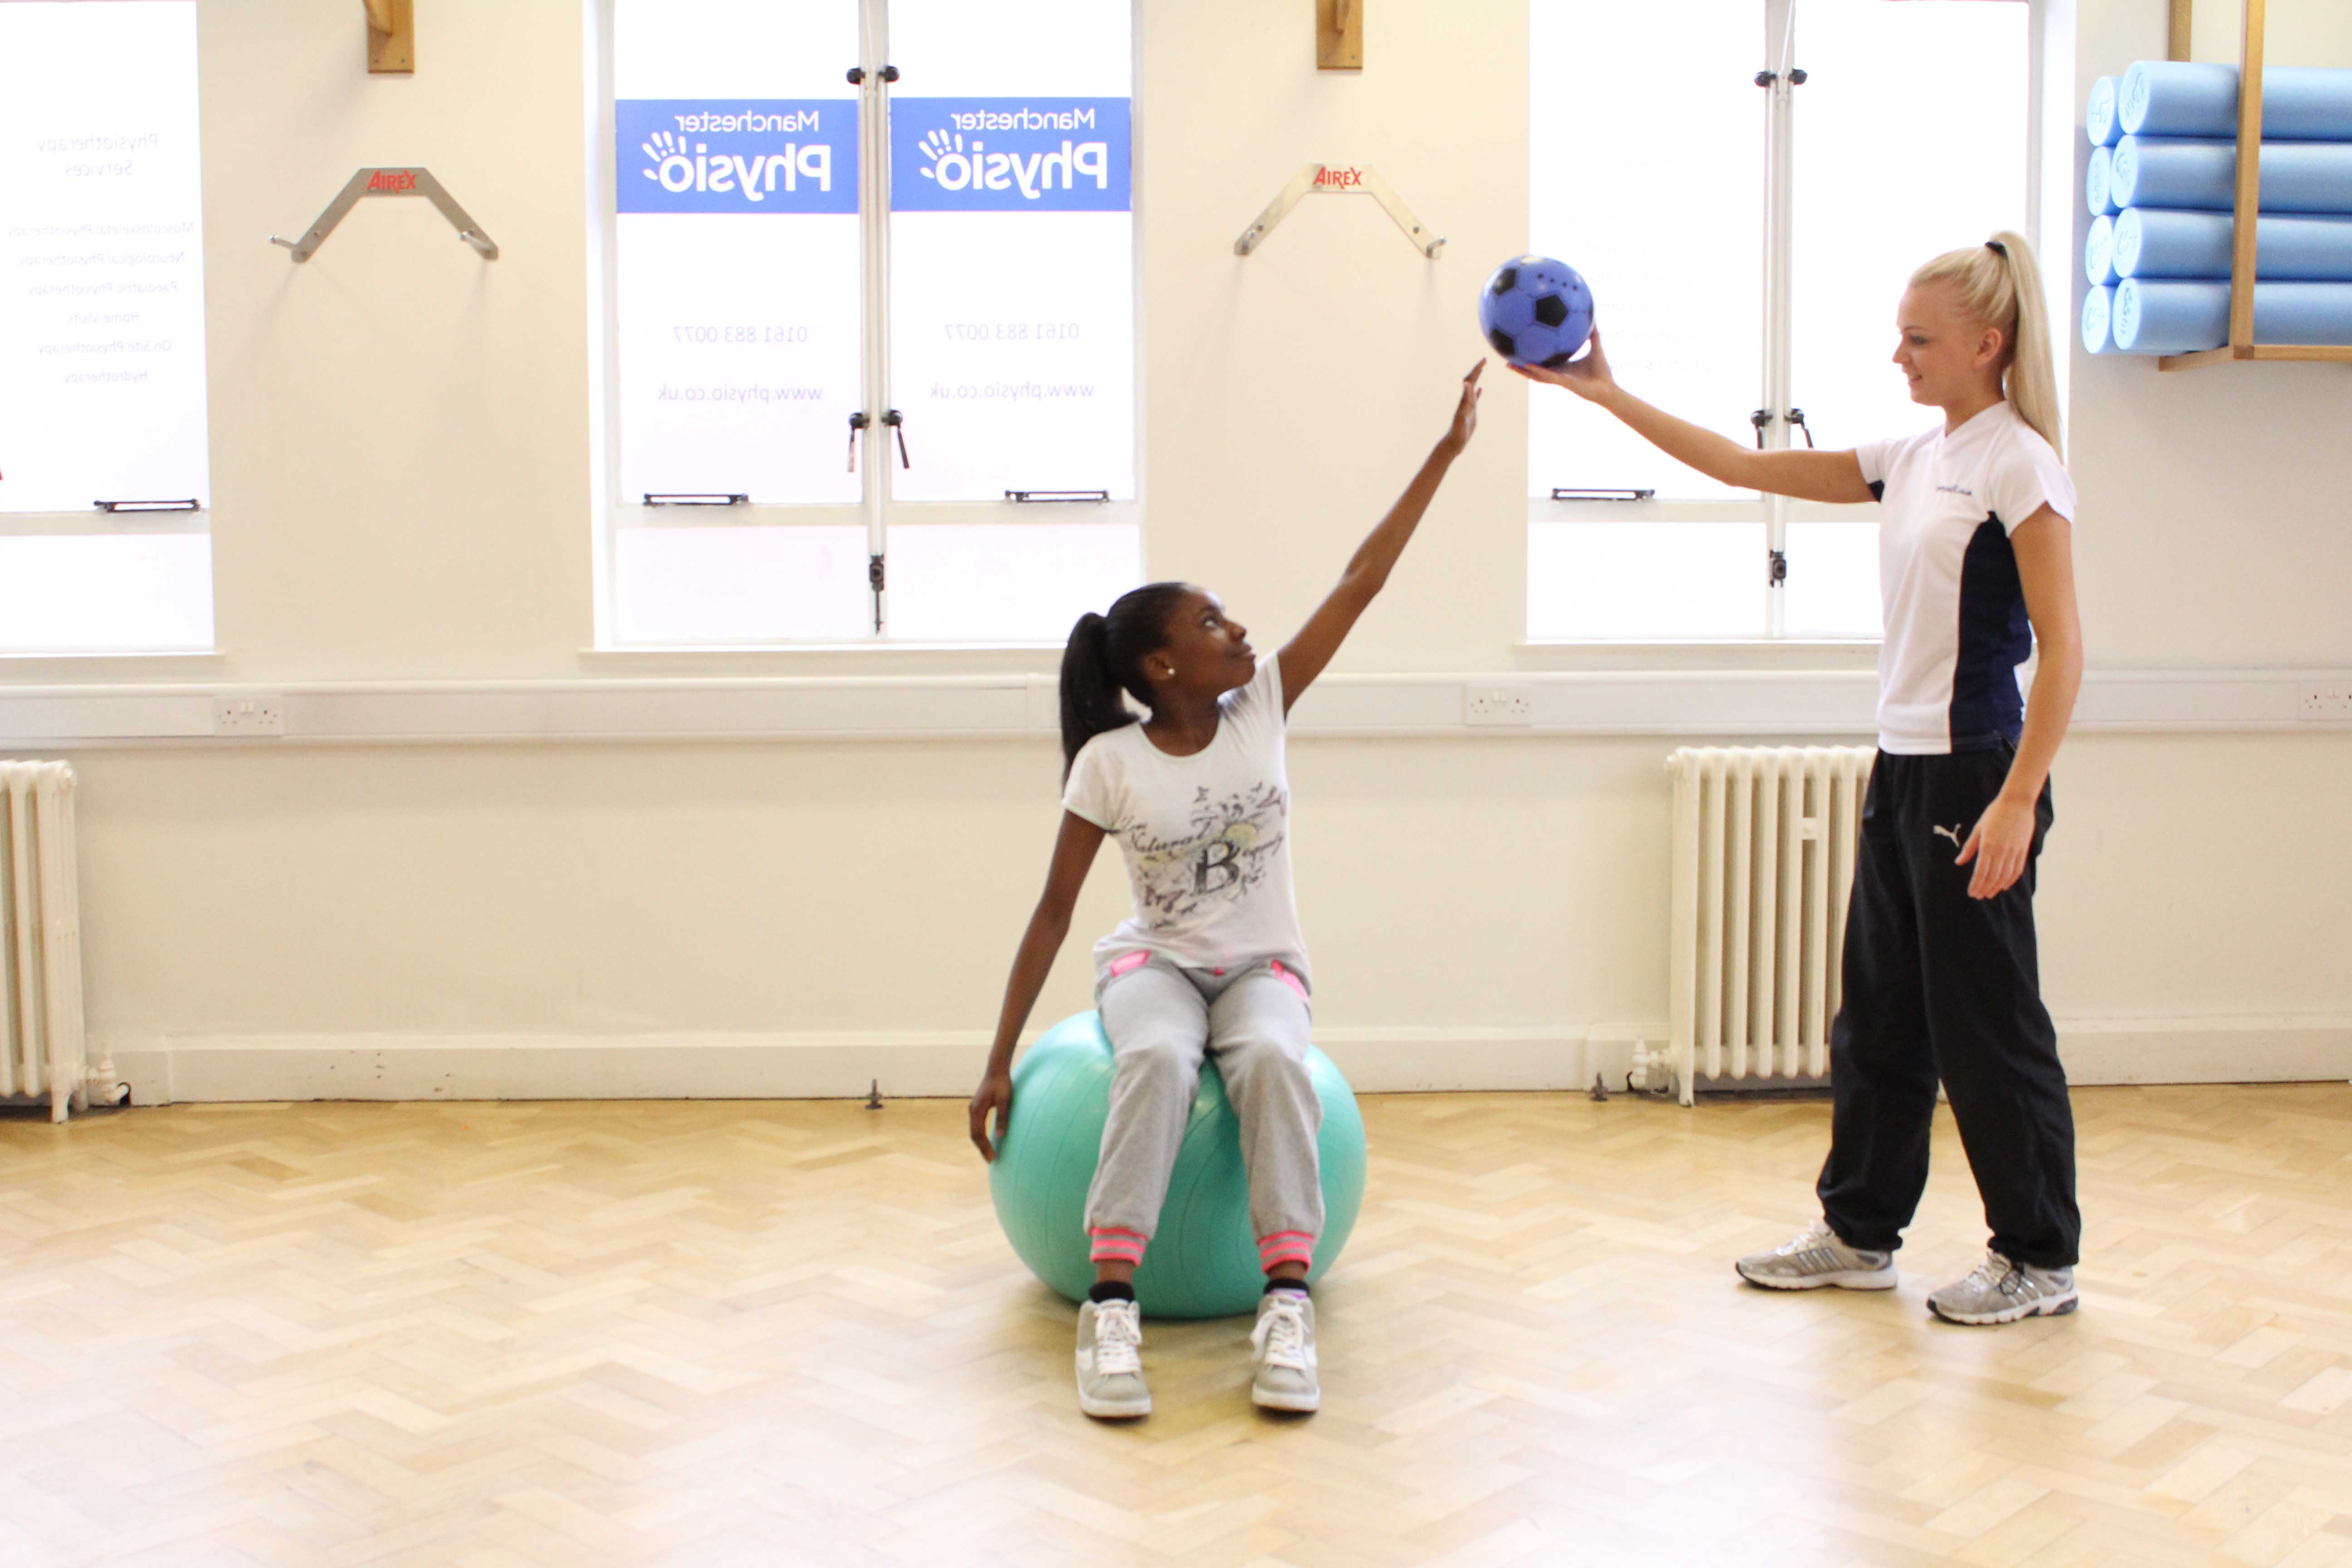 stability and stretching exercises conducted by a paediatric physiotherapist